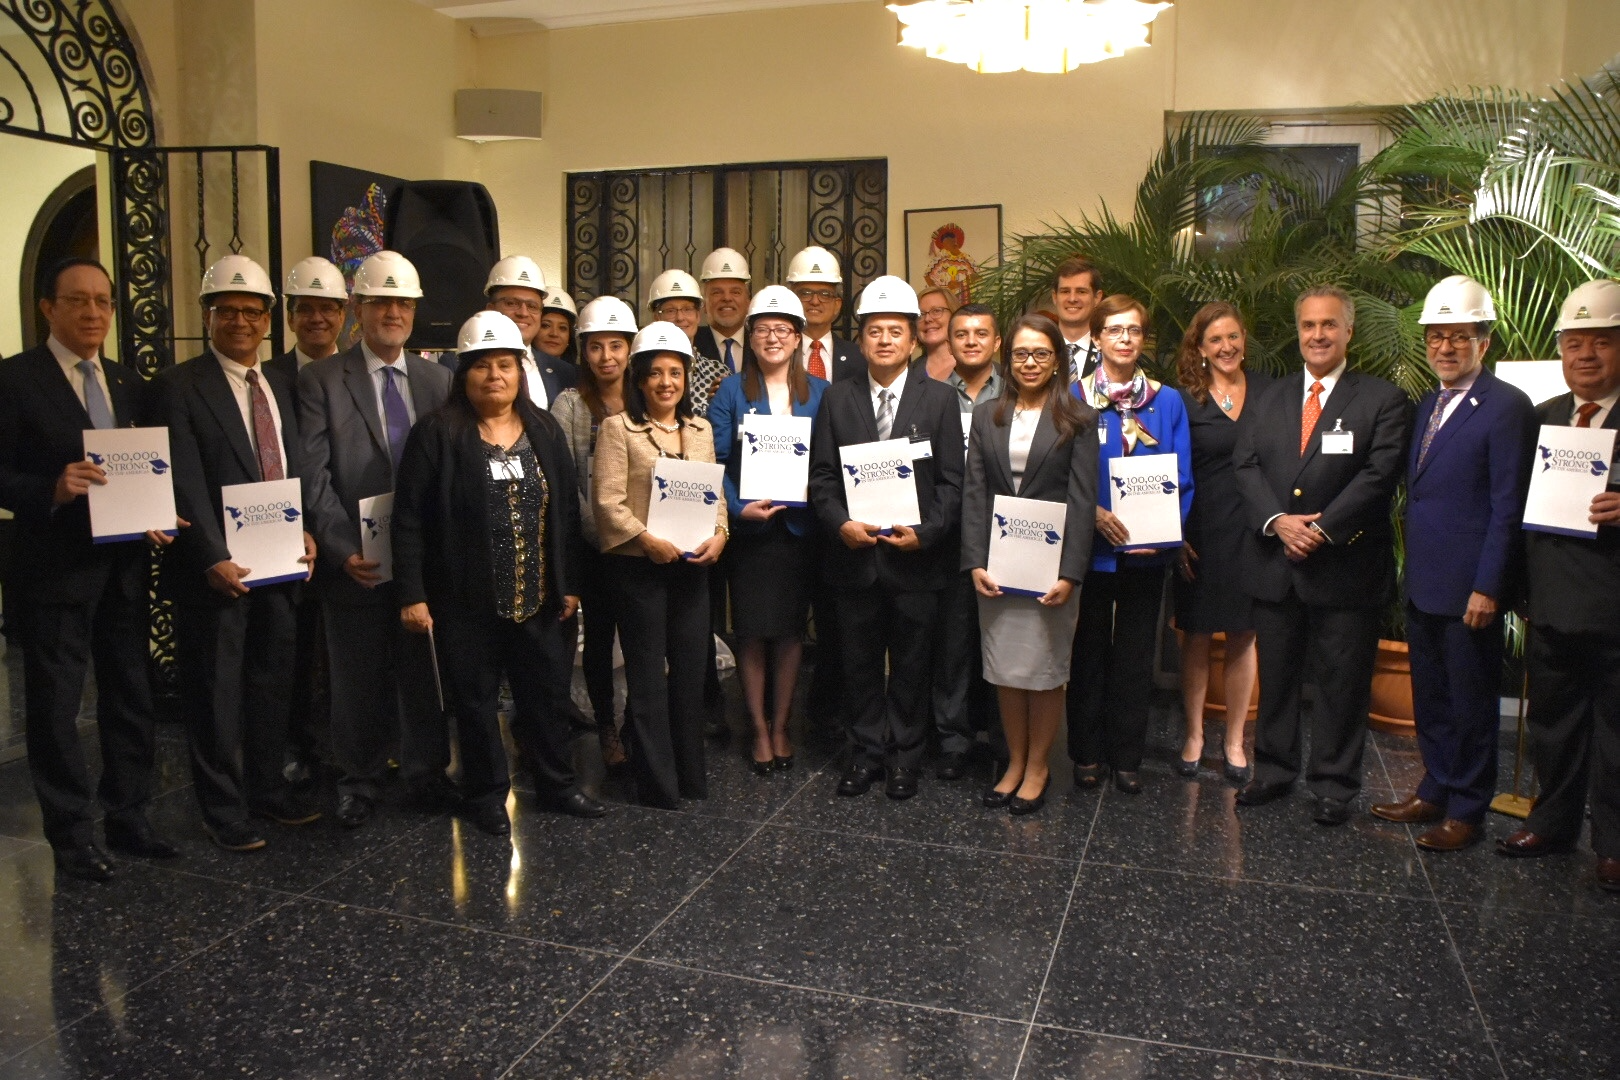 Oct. 30, 2019 - Guatemala City, Guatemala - Winners Announcement Event, Grant Competition #27 (Cementos Progreso and U.S. Department of State)